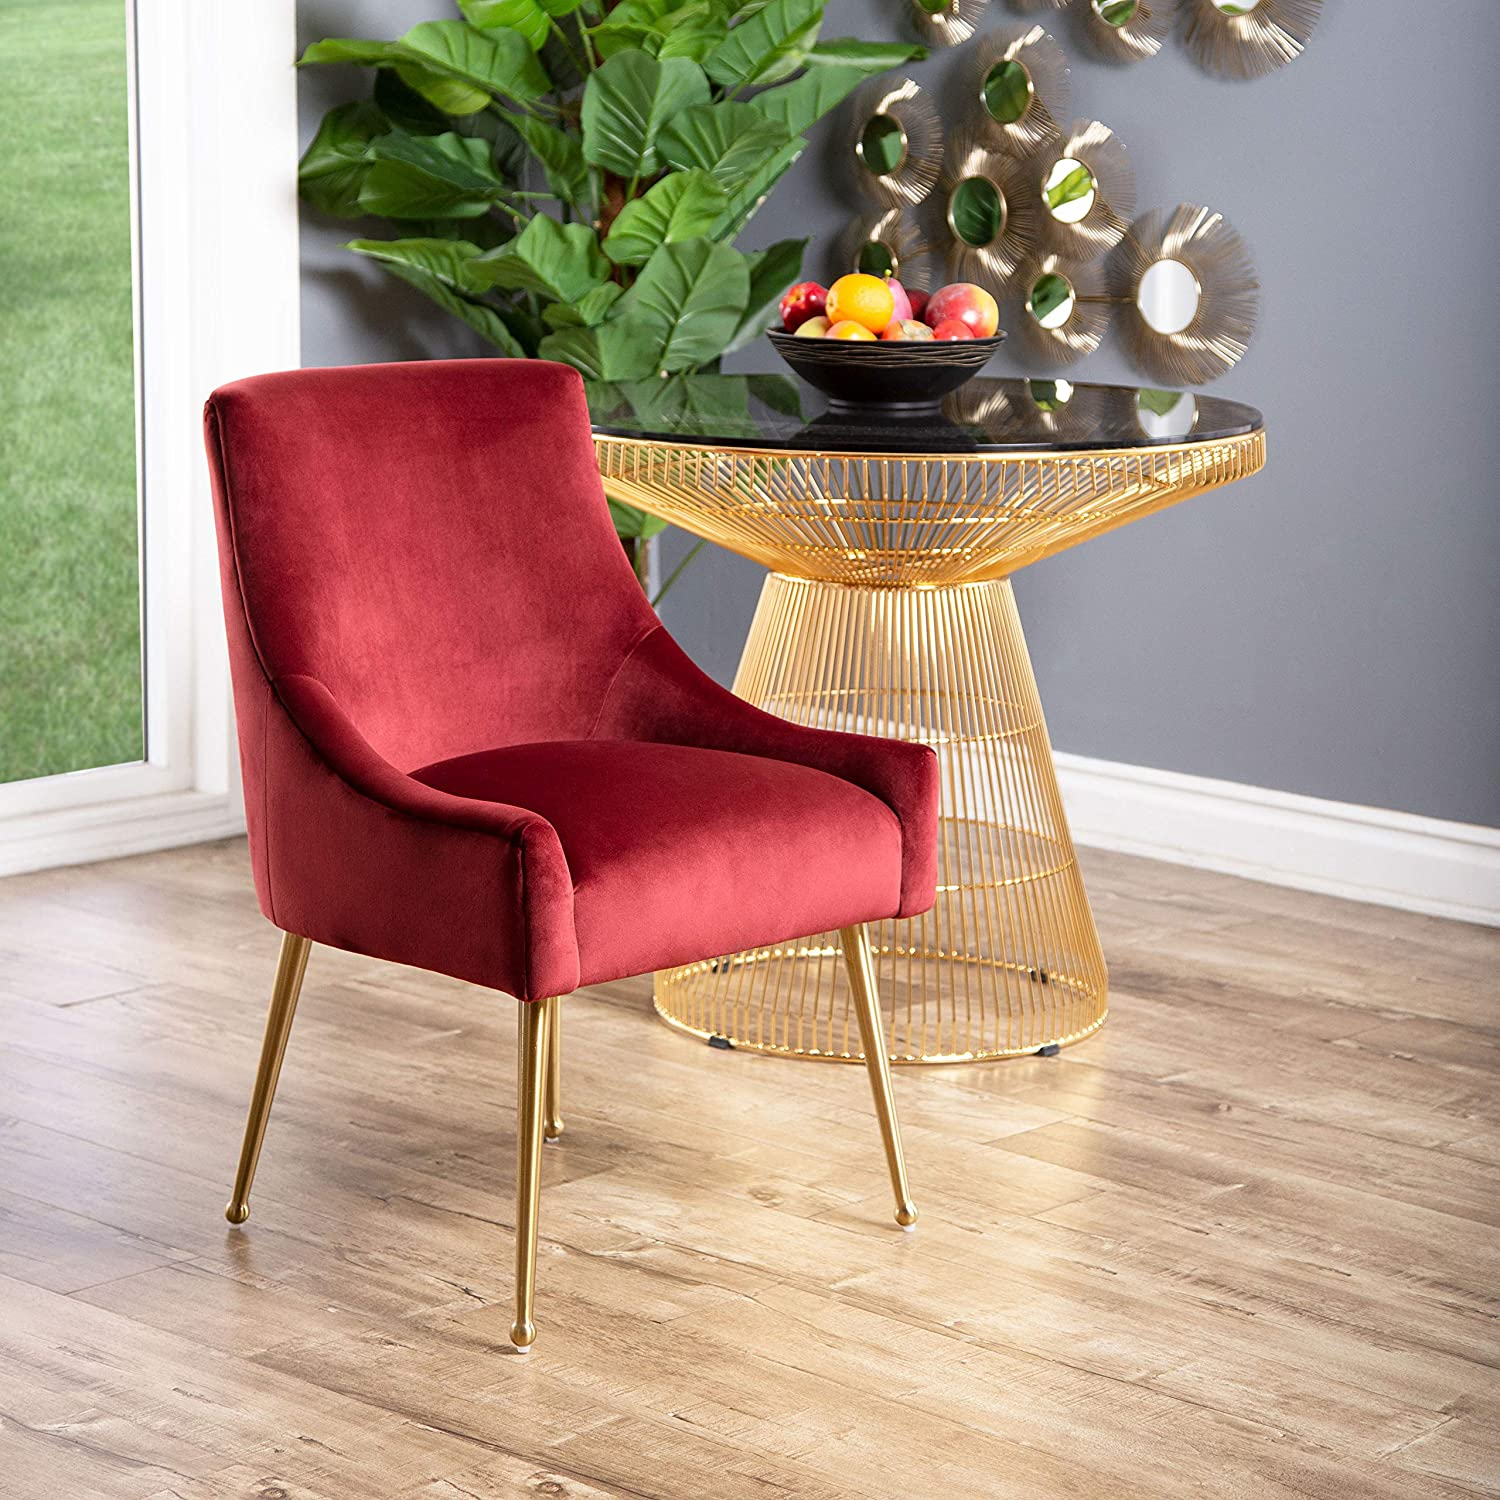 Amazon Com Abbyson Living Velvet Upholstered Dining Chair With Gold Finished Handle Burgundy Chairs